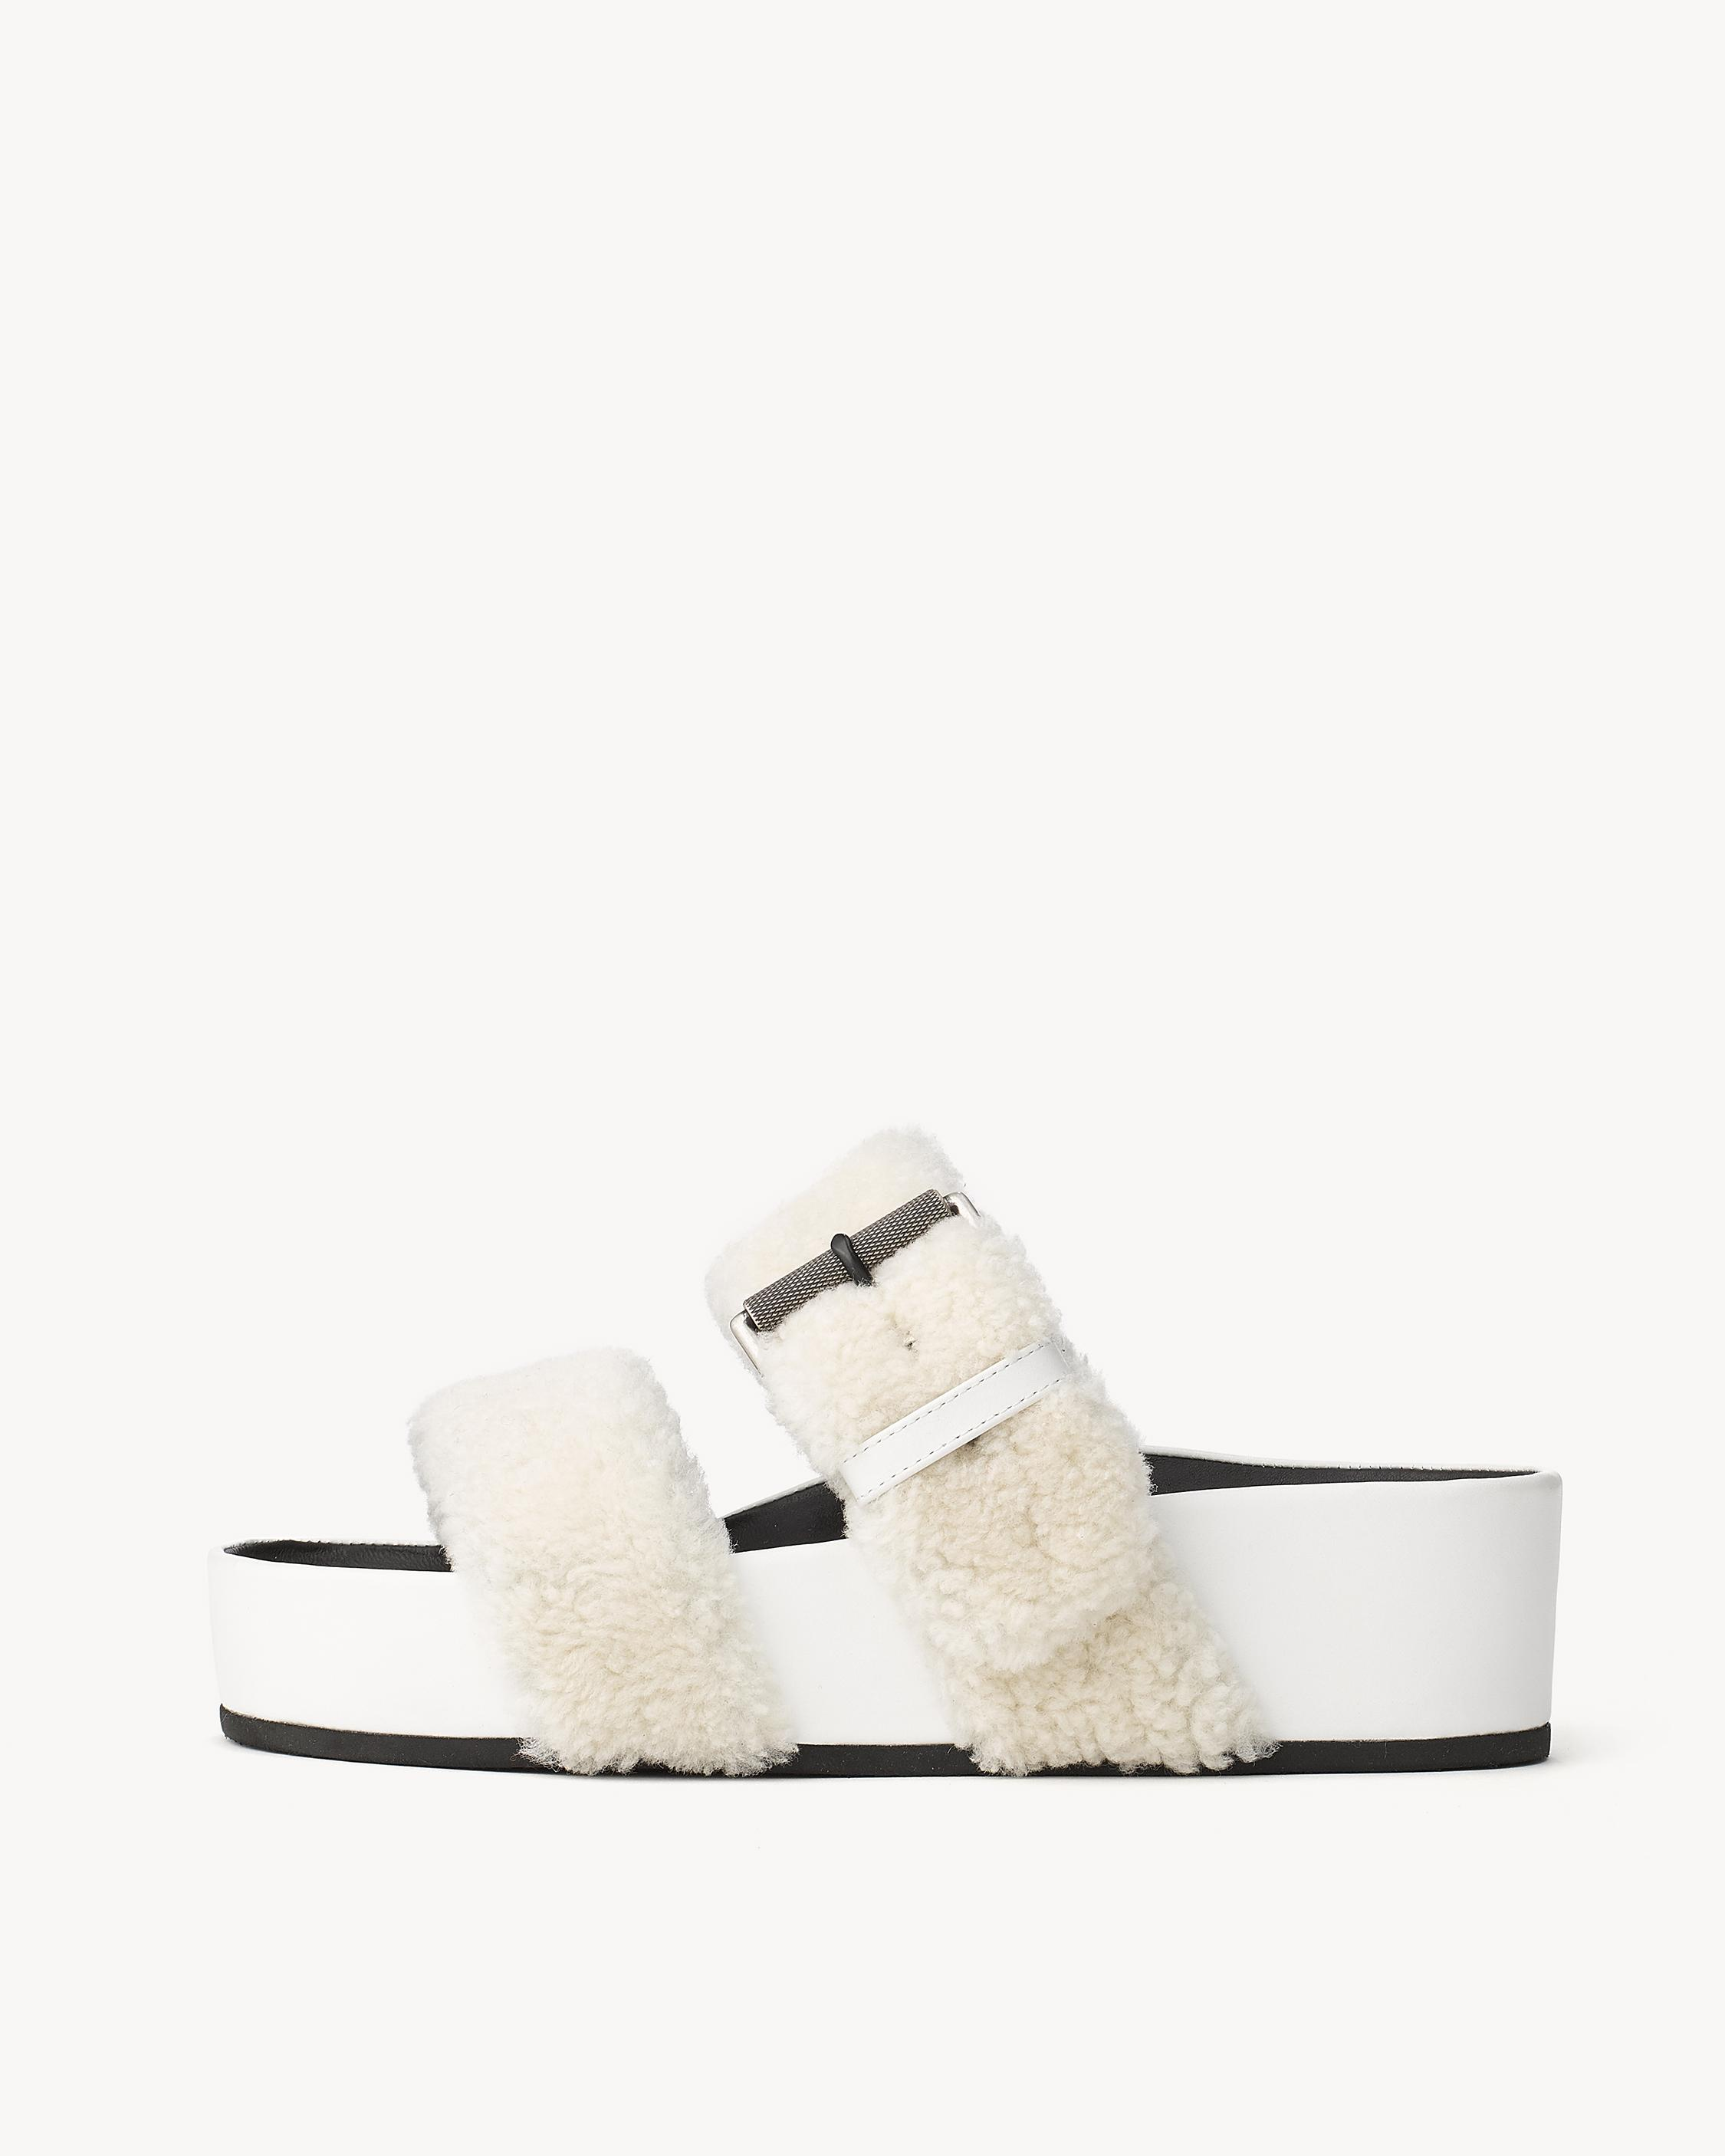 RAG&BONE Evin Leather Sandals with Shearling Gr. IT 36 o2fTAk